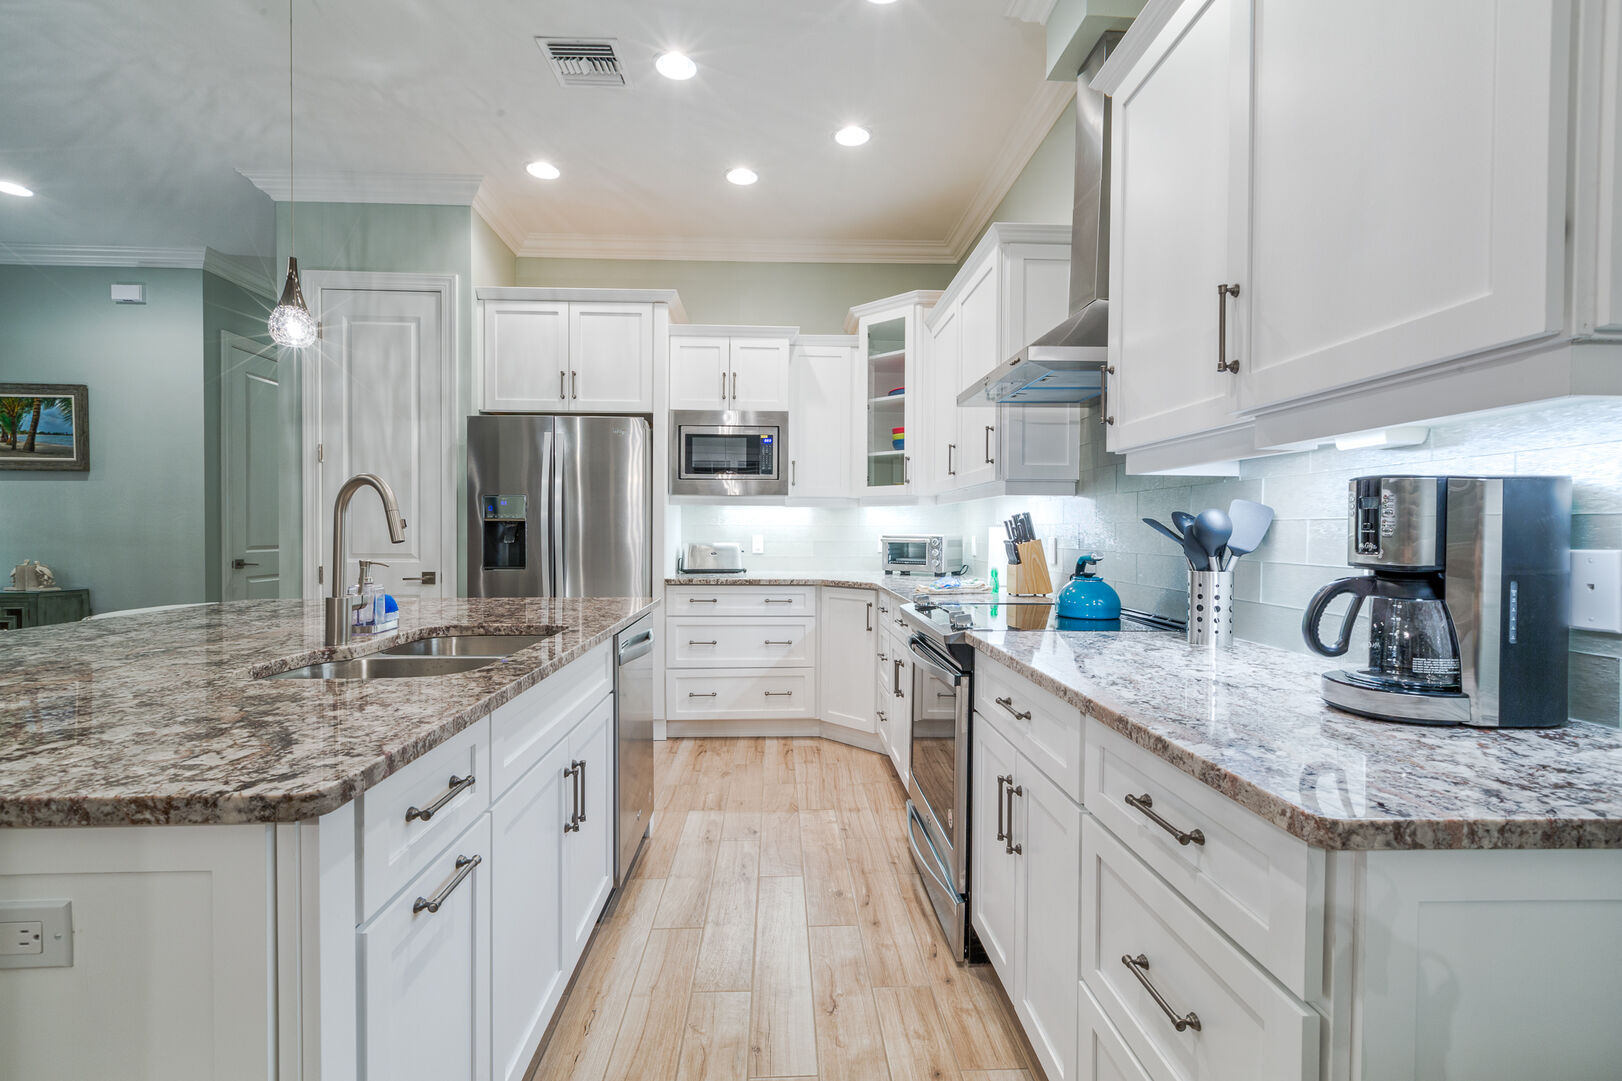 Kitchen complete with center island with sink, granite countertops, and modern appliances.